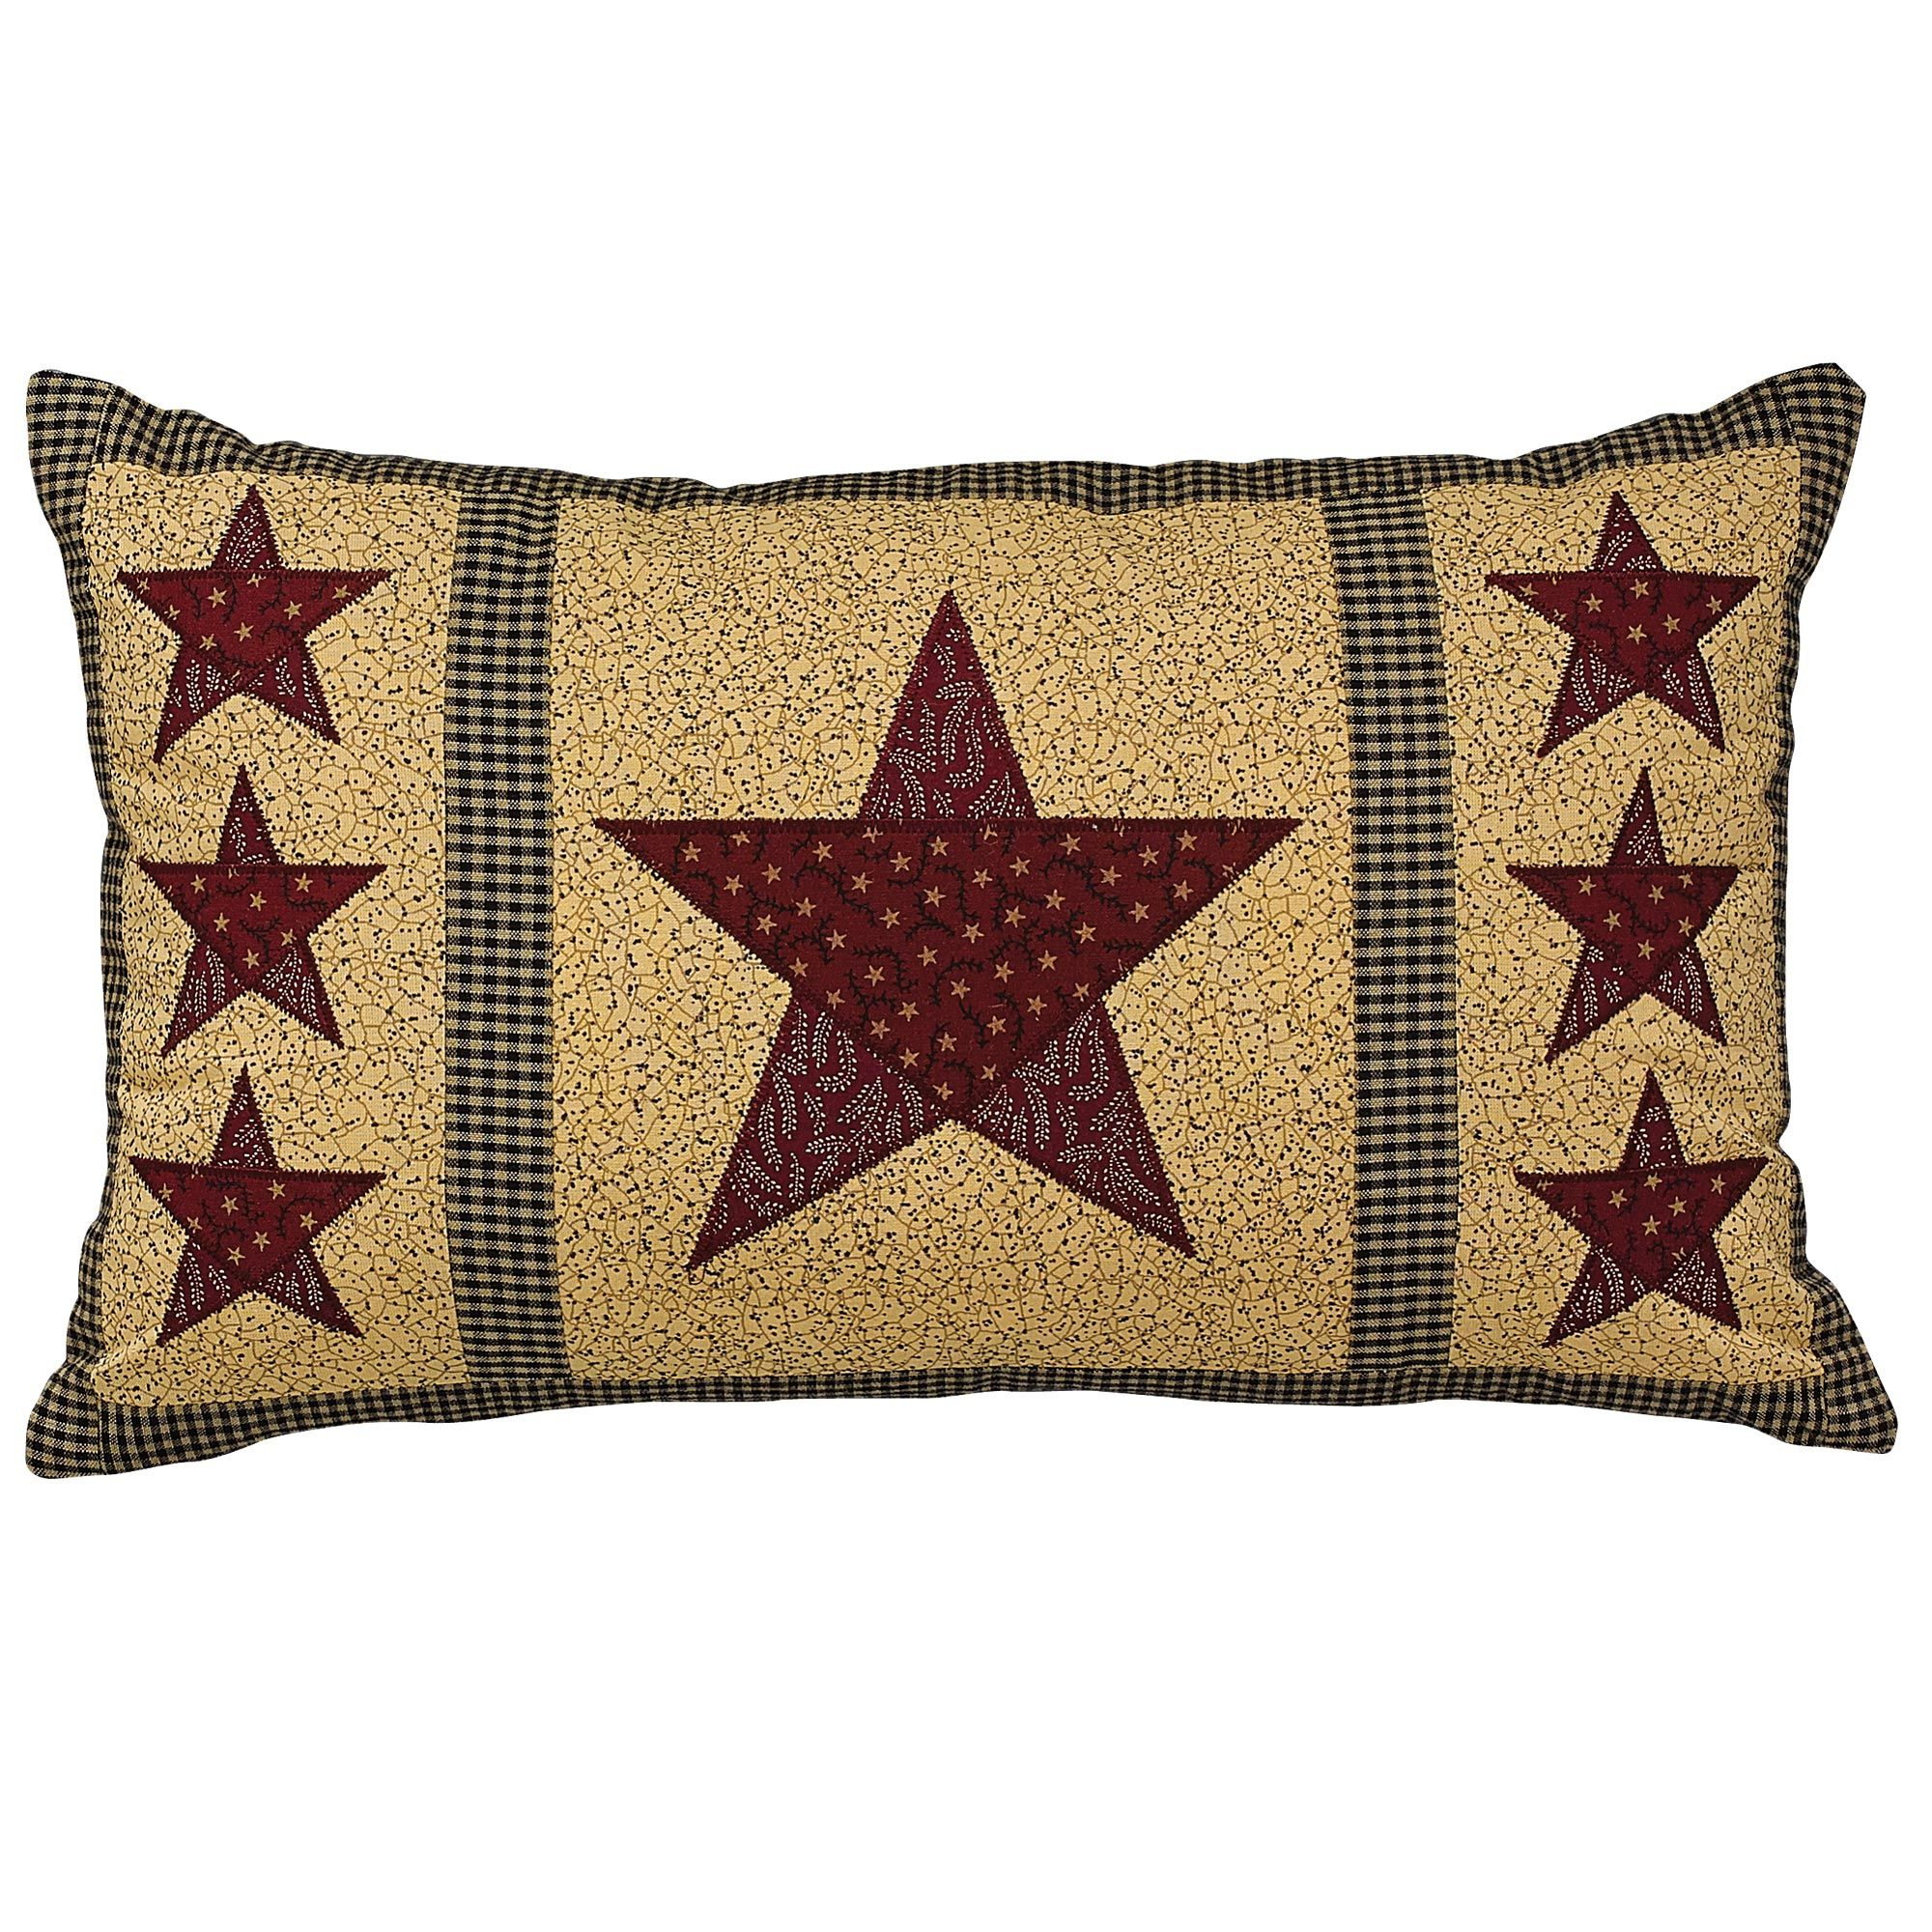 Tacoma Quilted Pillow 16 Filled | Almohadas personalizadas